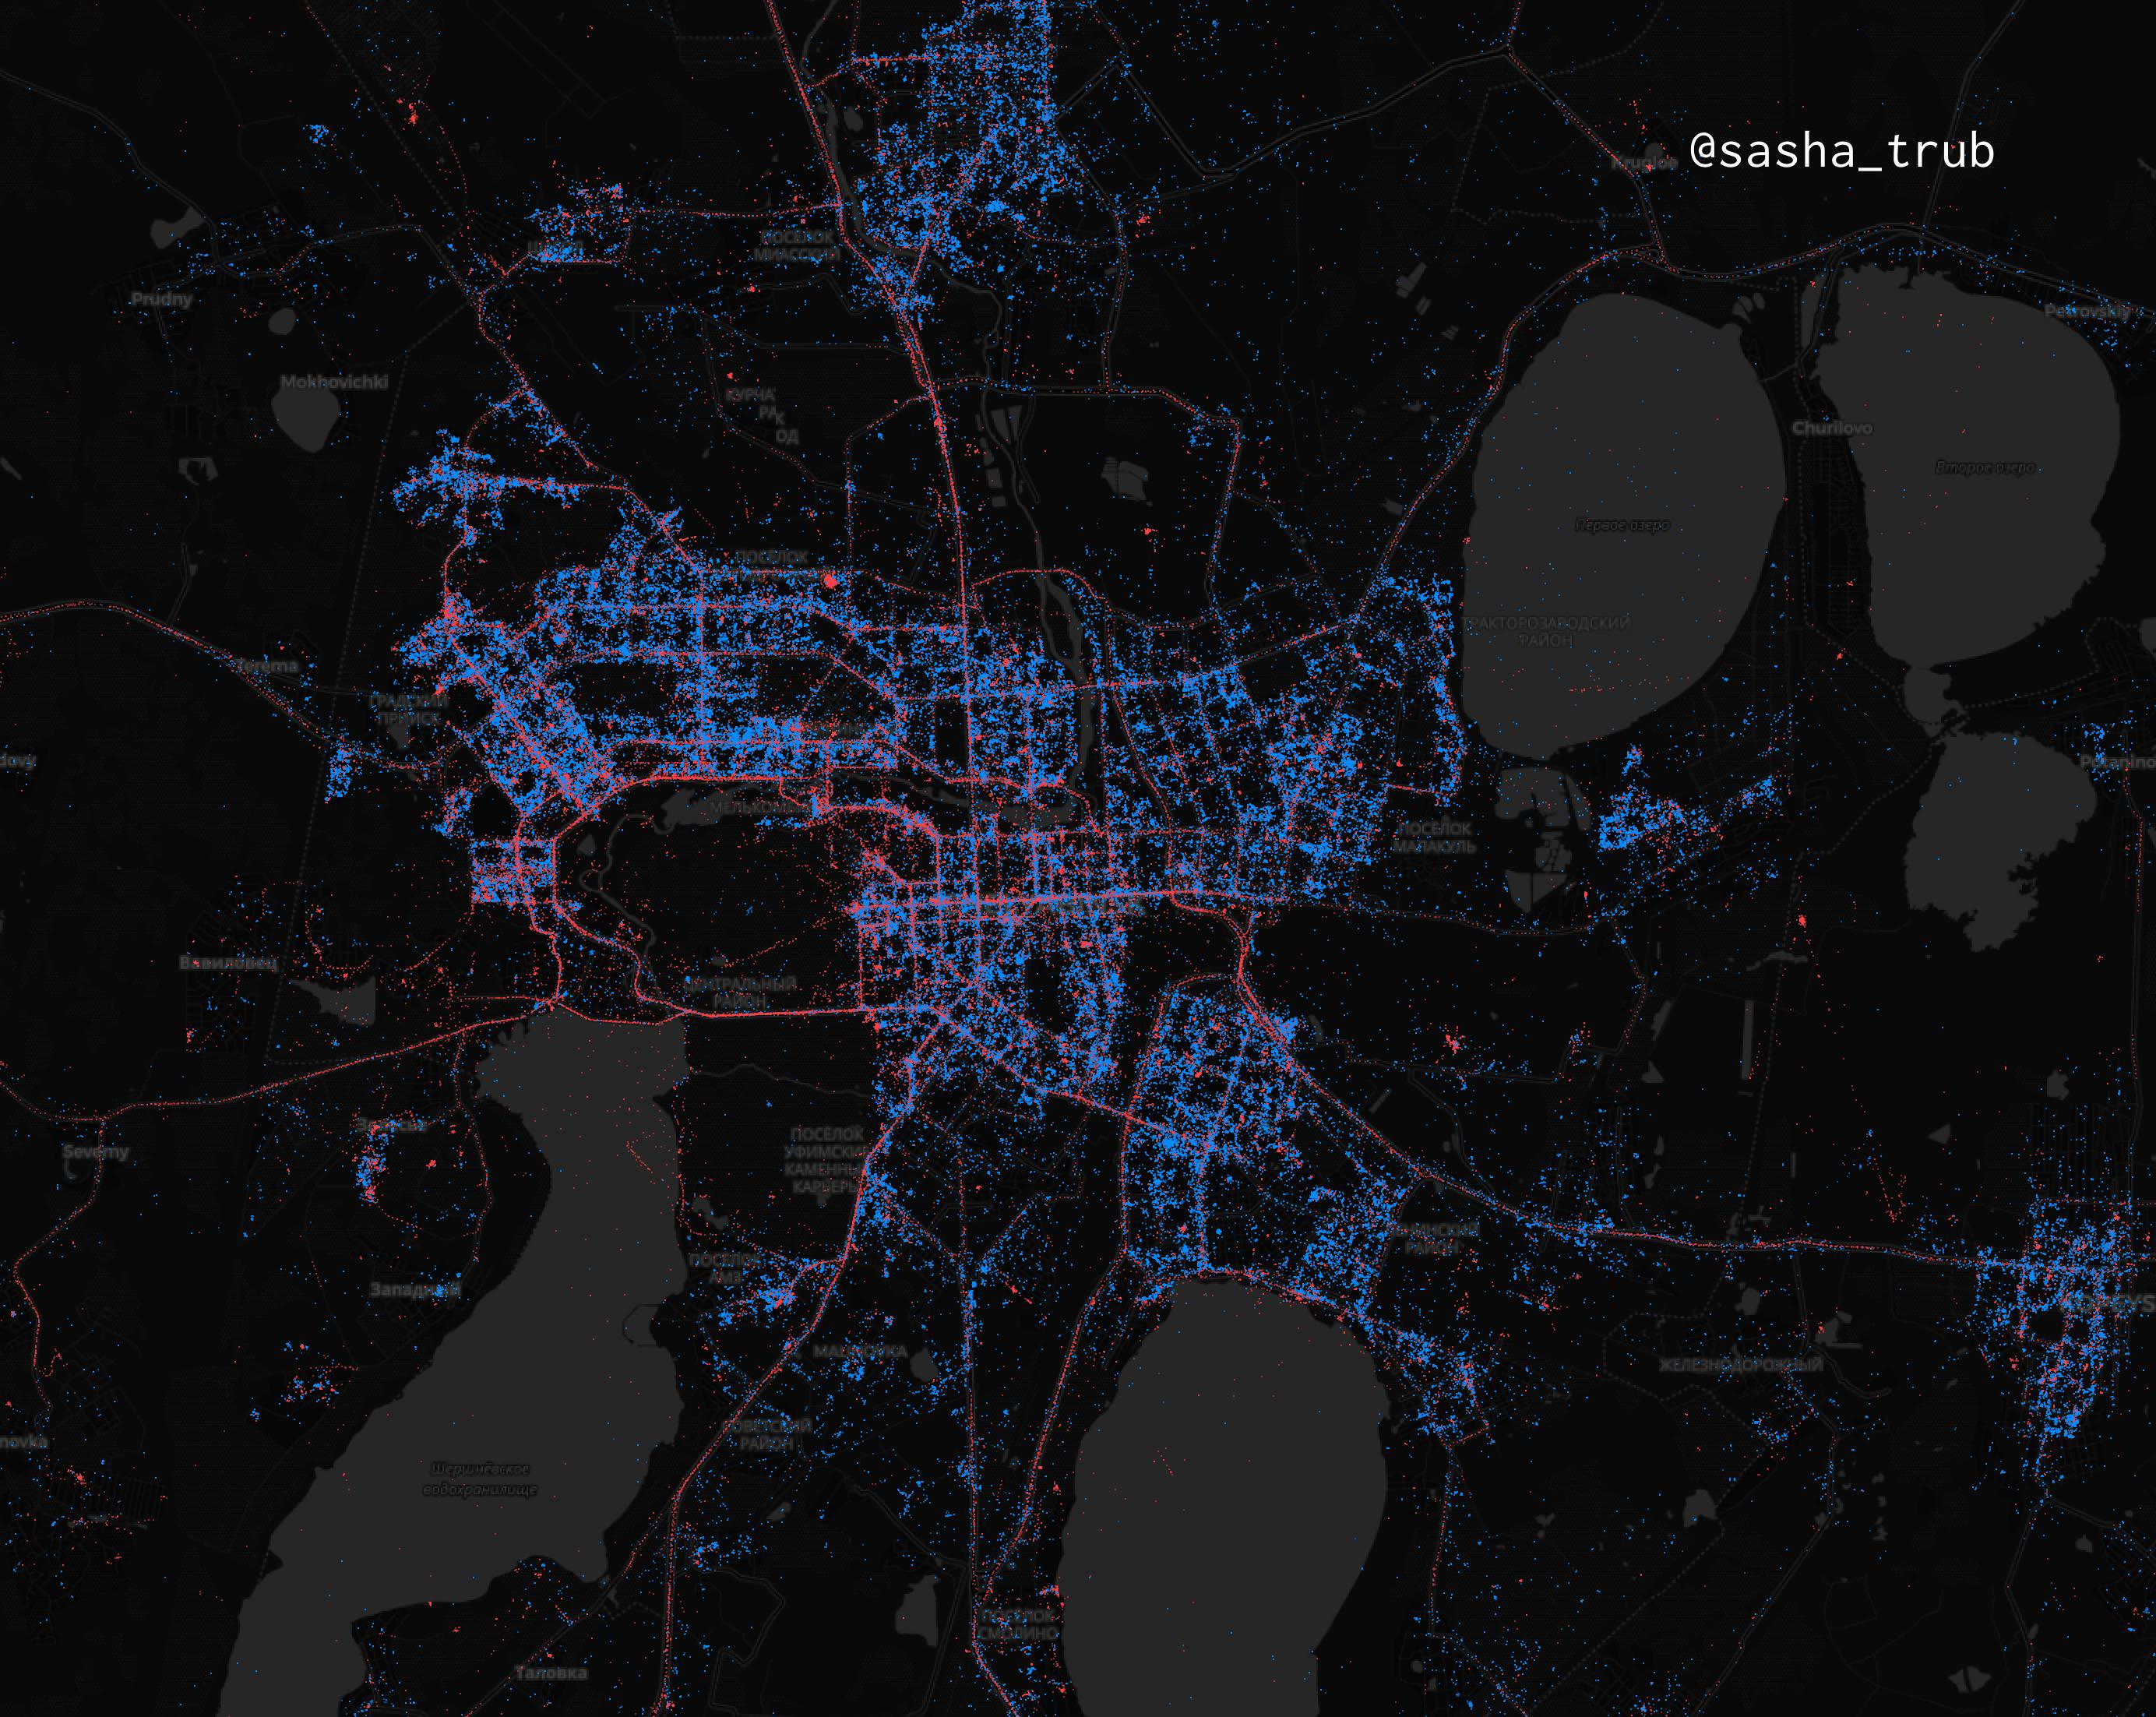 In Moscow - iPhones, in St. Petersburg - Android. What are the maps of Android and iOS users in Russia | Kanobu - Image 10